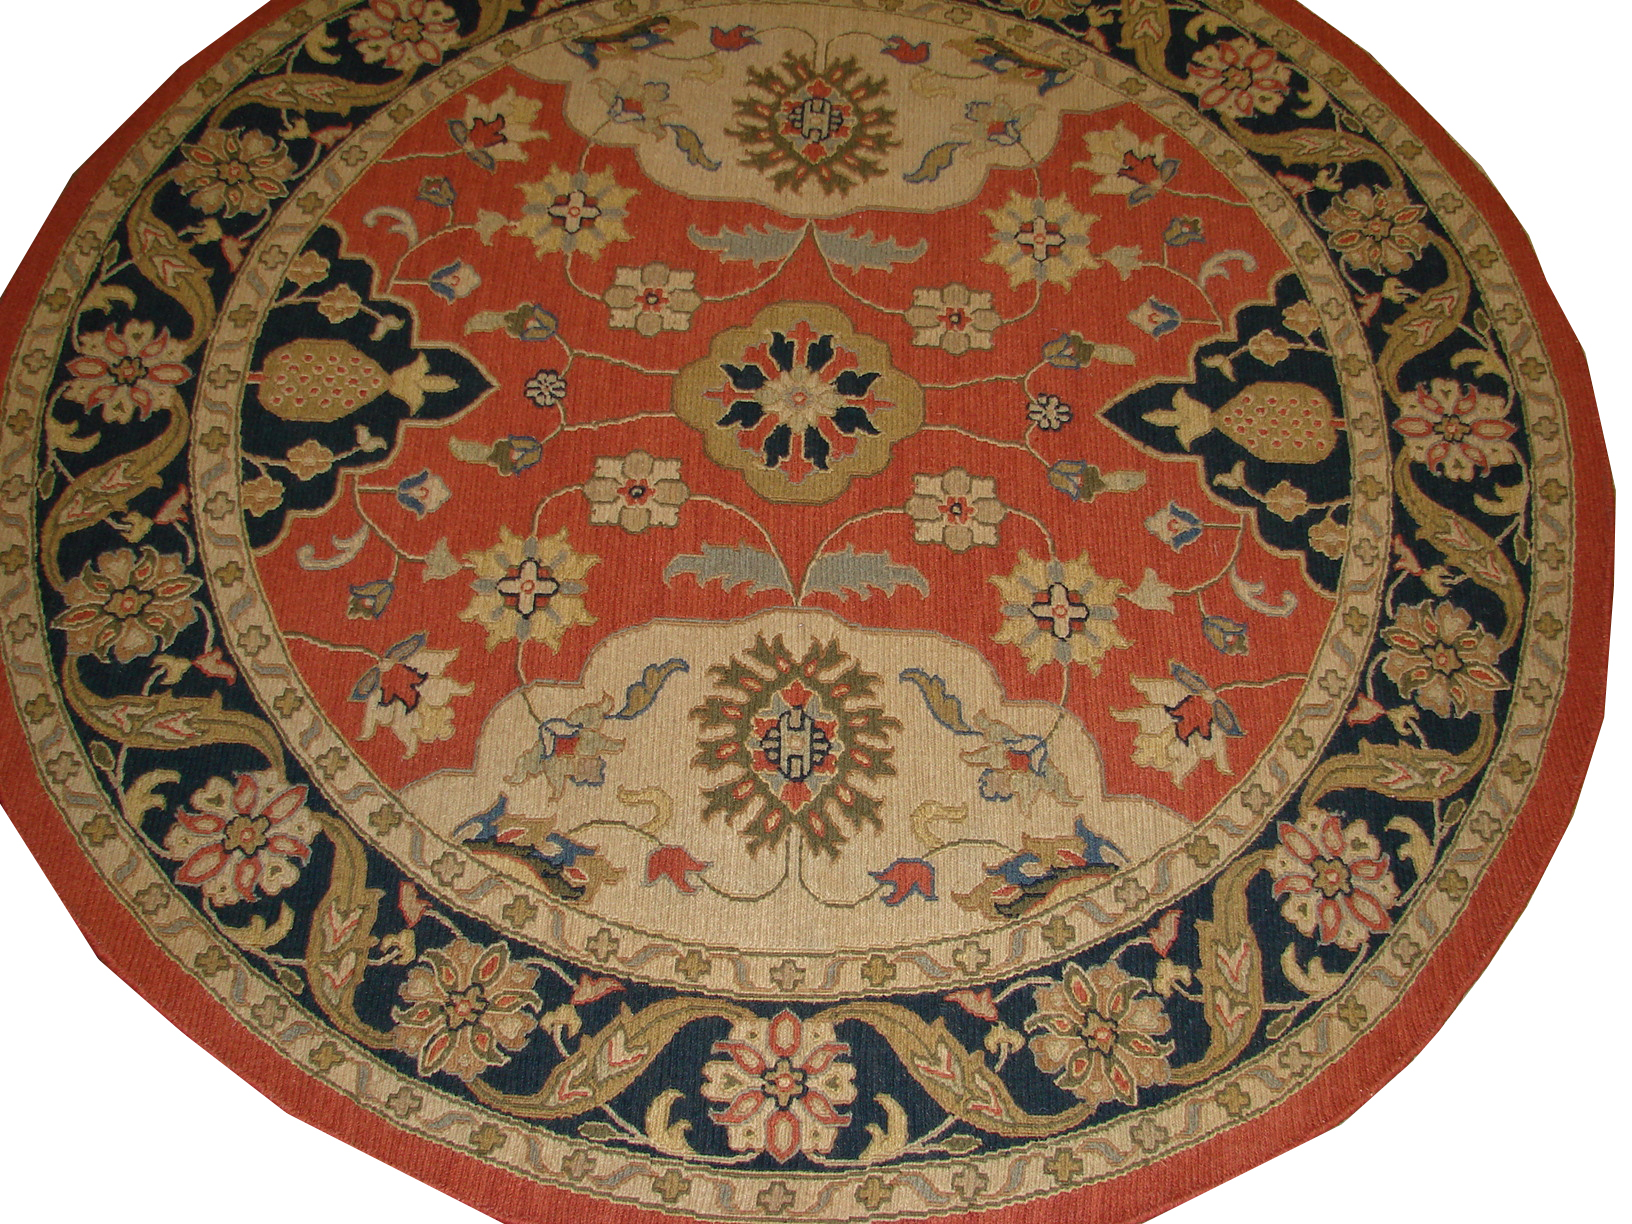 6 - 7 Round & Square Flat Weave Hand Knotted Wool Area Rug - MR2789